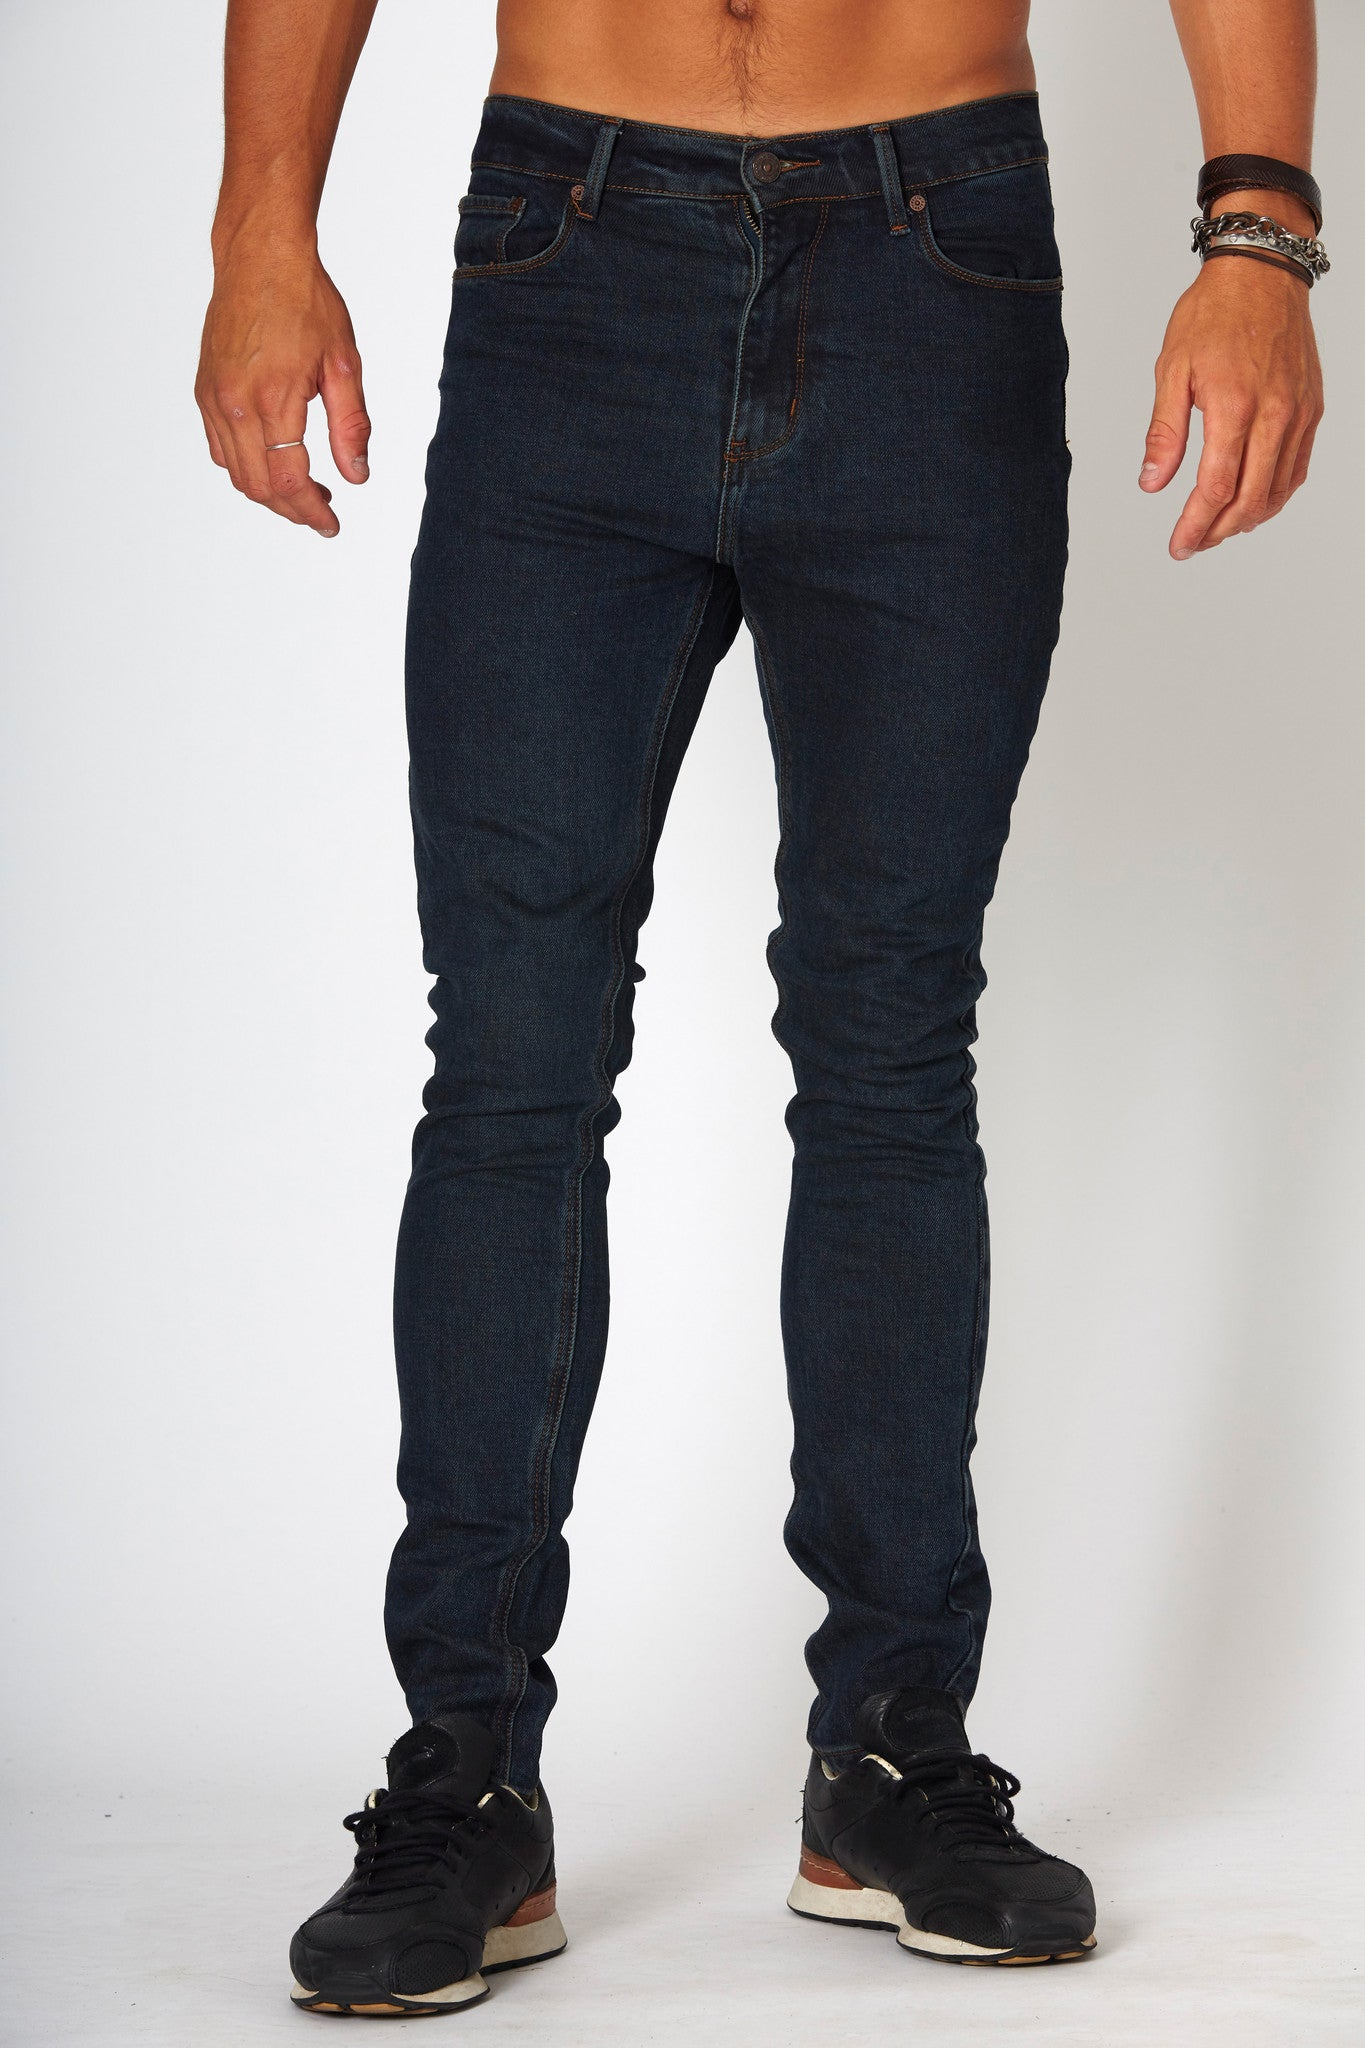 #2A30 Skinny Stretch Comet Blue - denimcolab